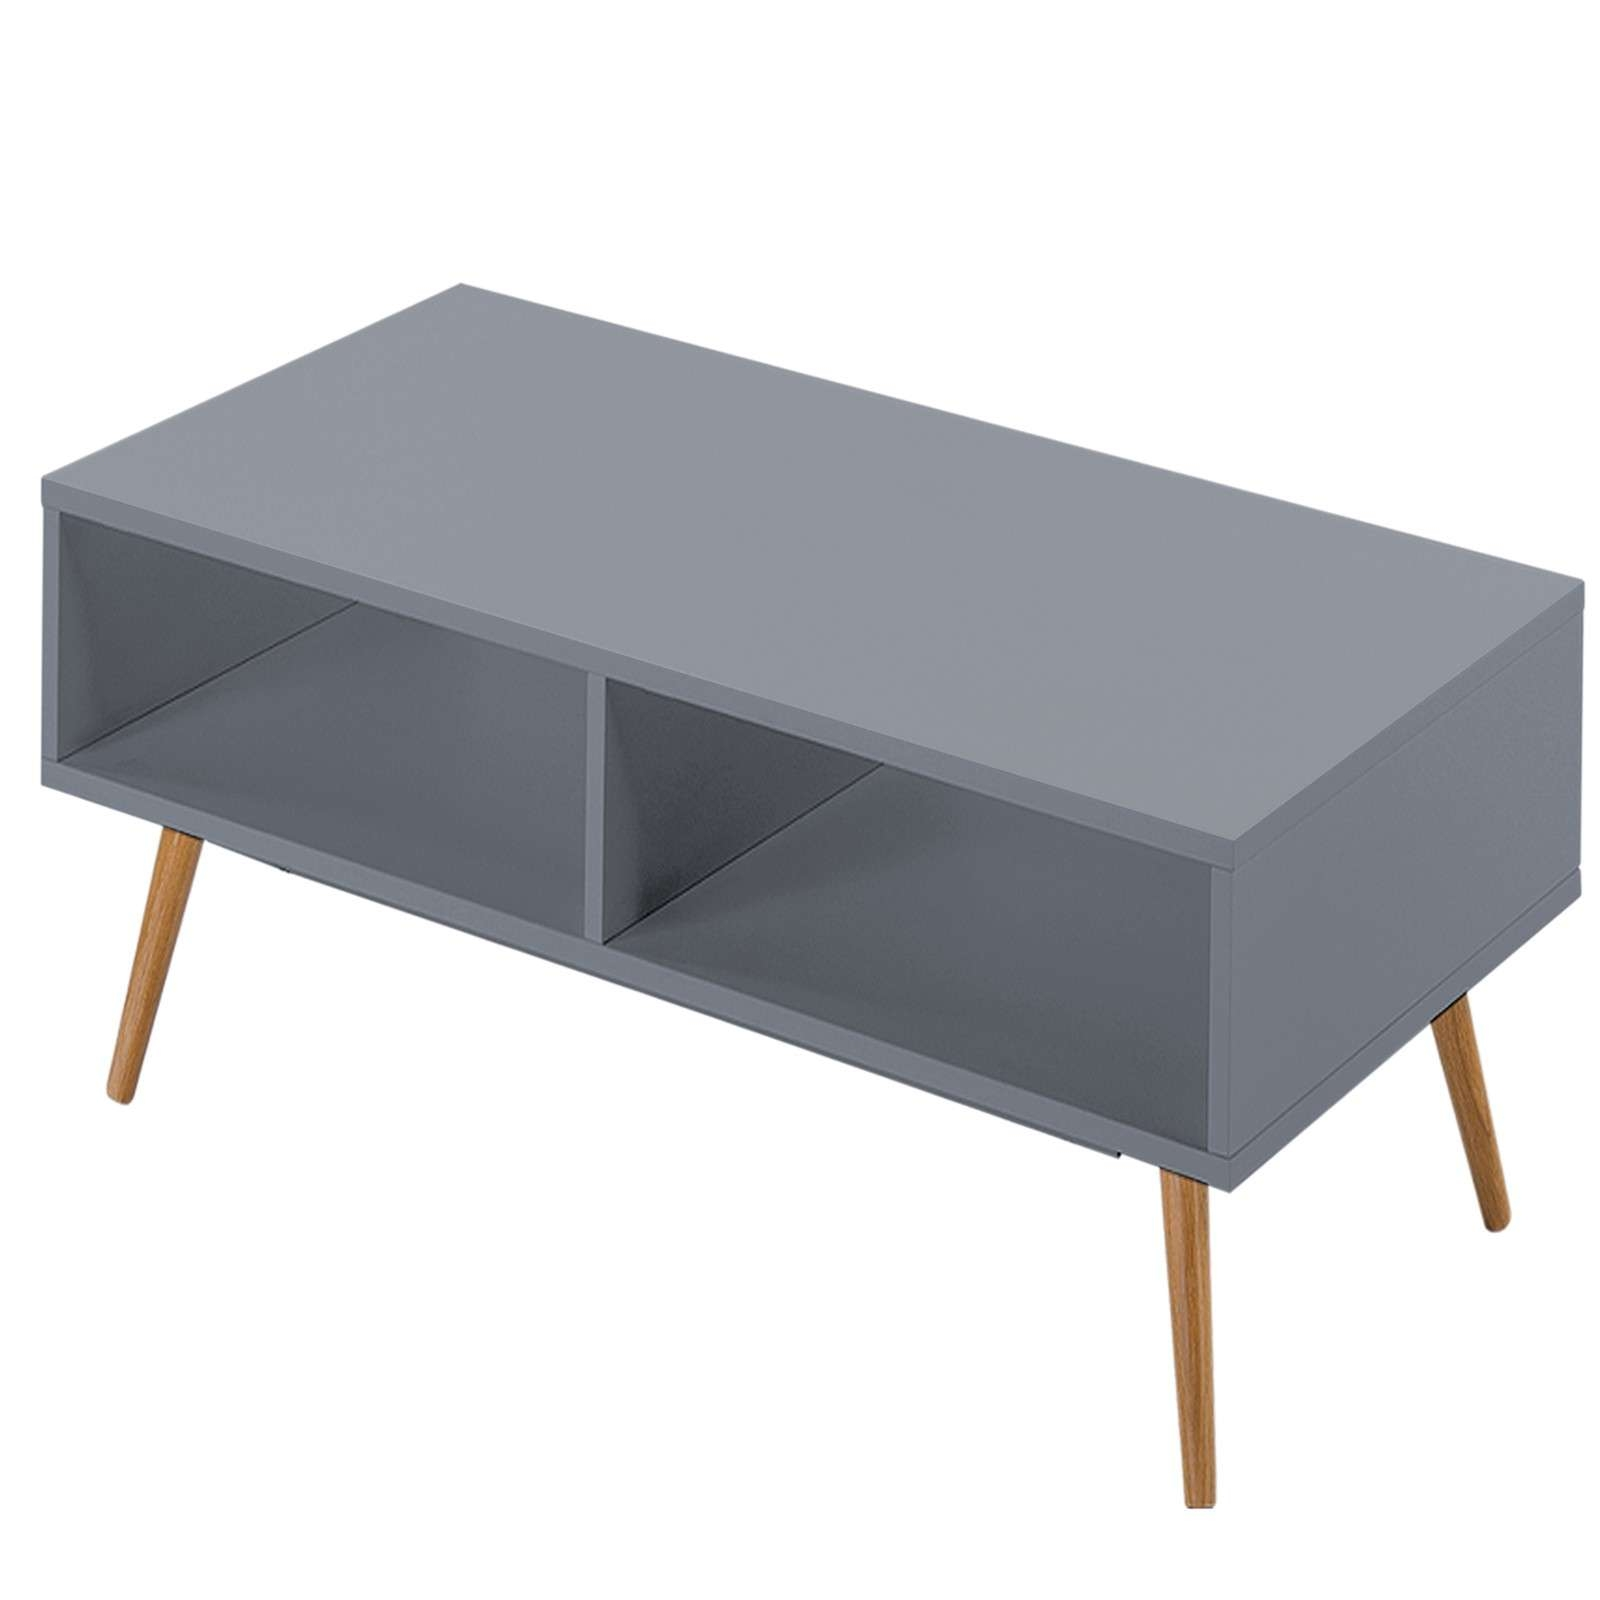 Scandinavian Modern Tv Stand From Abreo Abreo Home Furniture For Scandinavian Tv Stands (View 8 of 15)